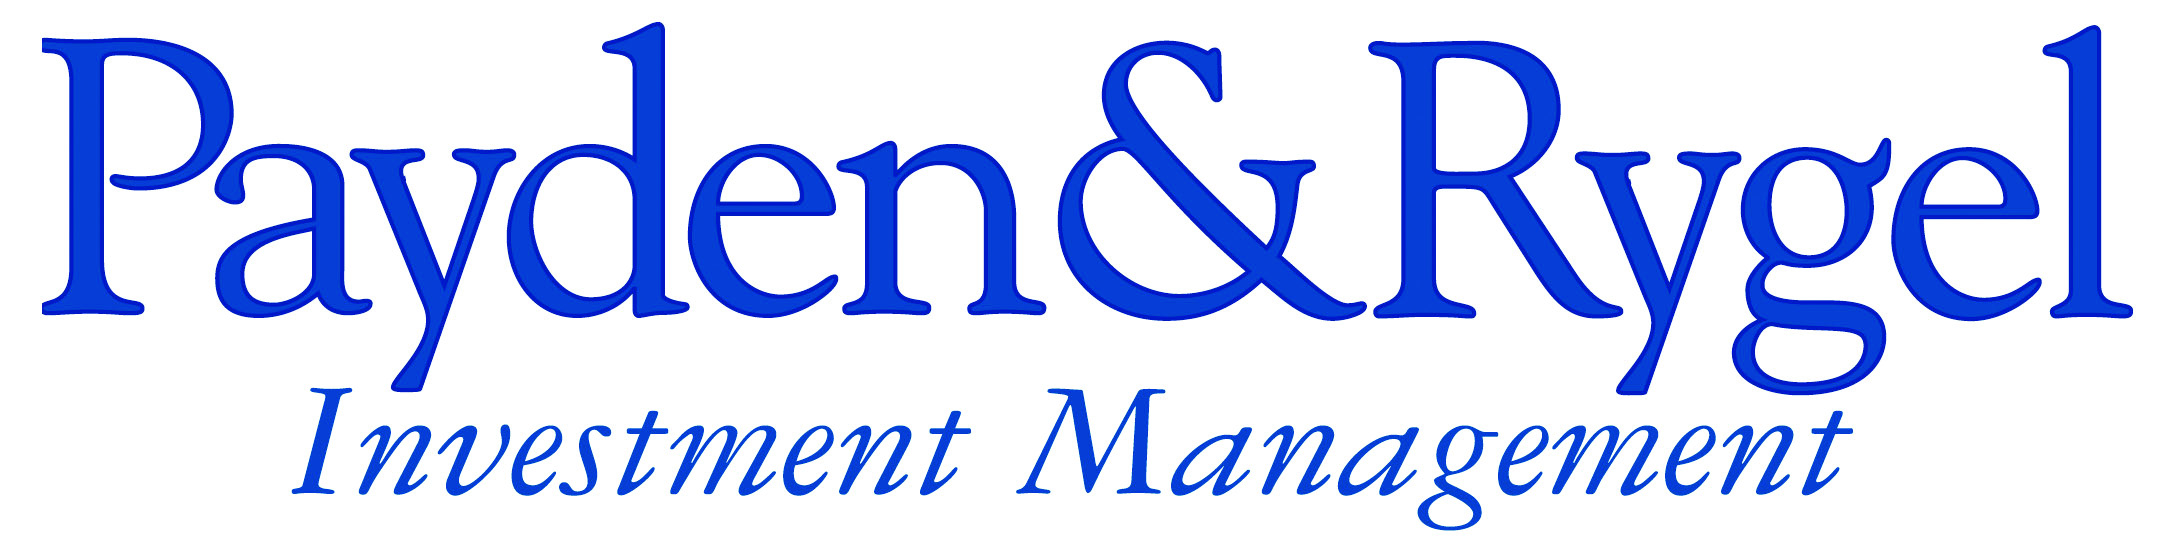 Payden & Rygel Investment Managers